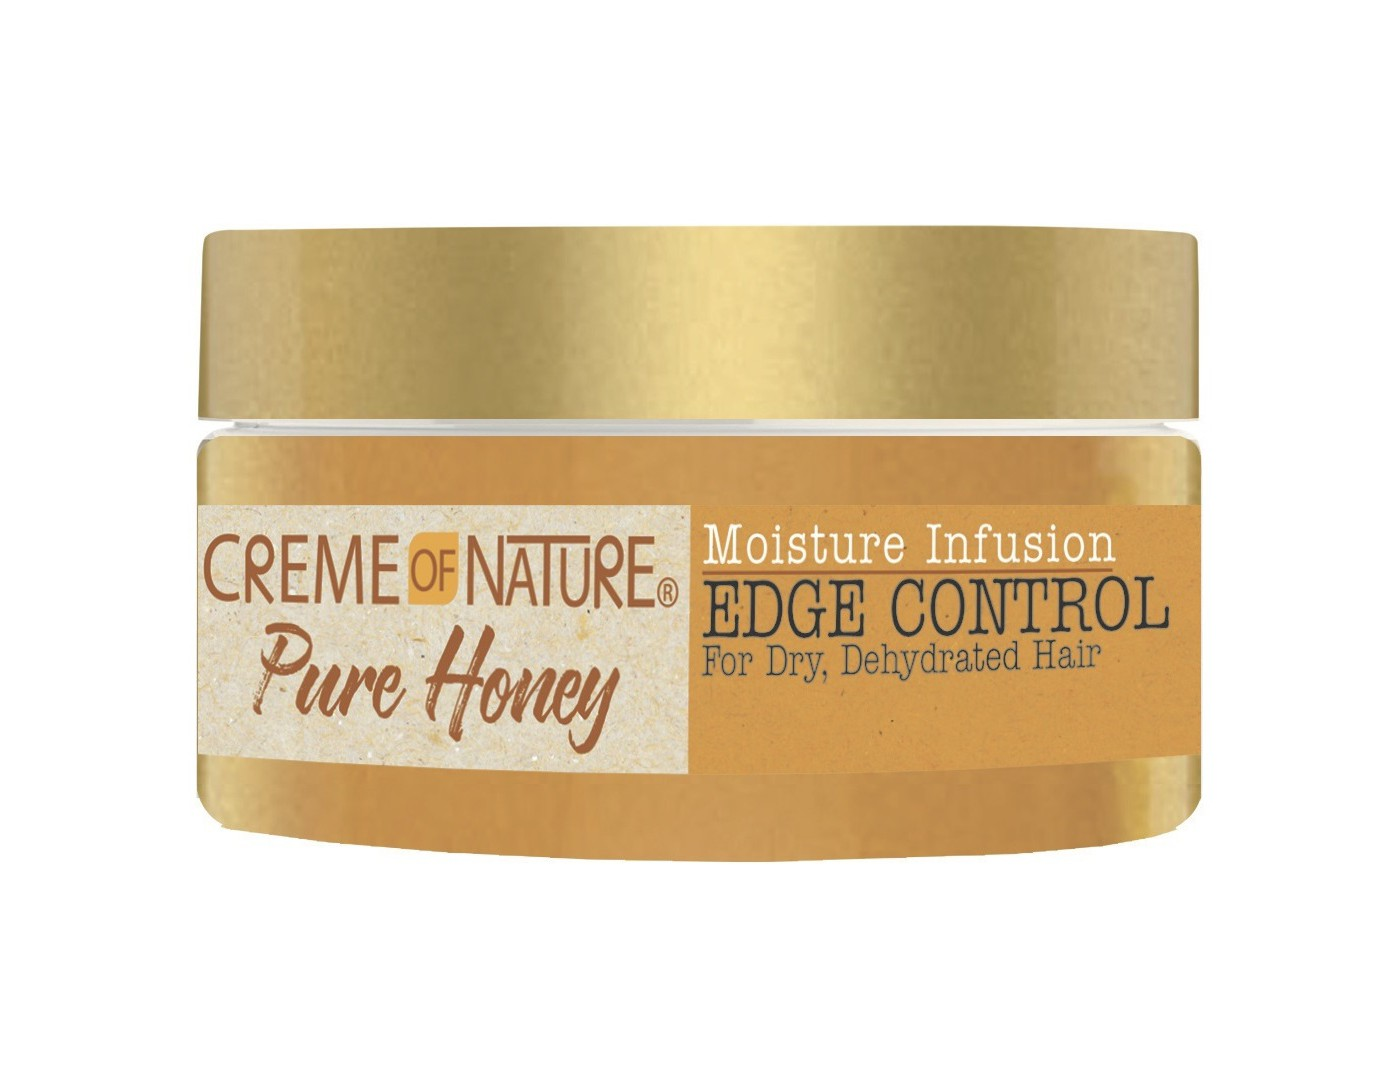 Creme of Nature Pure Honey, Moisture Infusion Edge Control